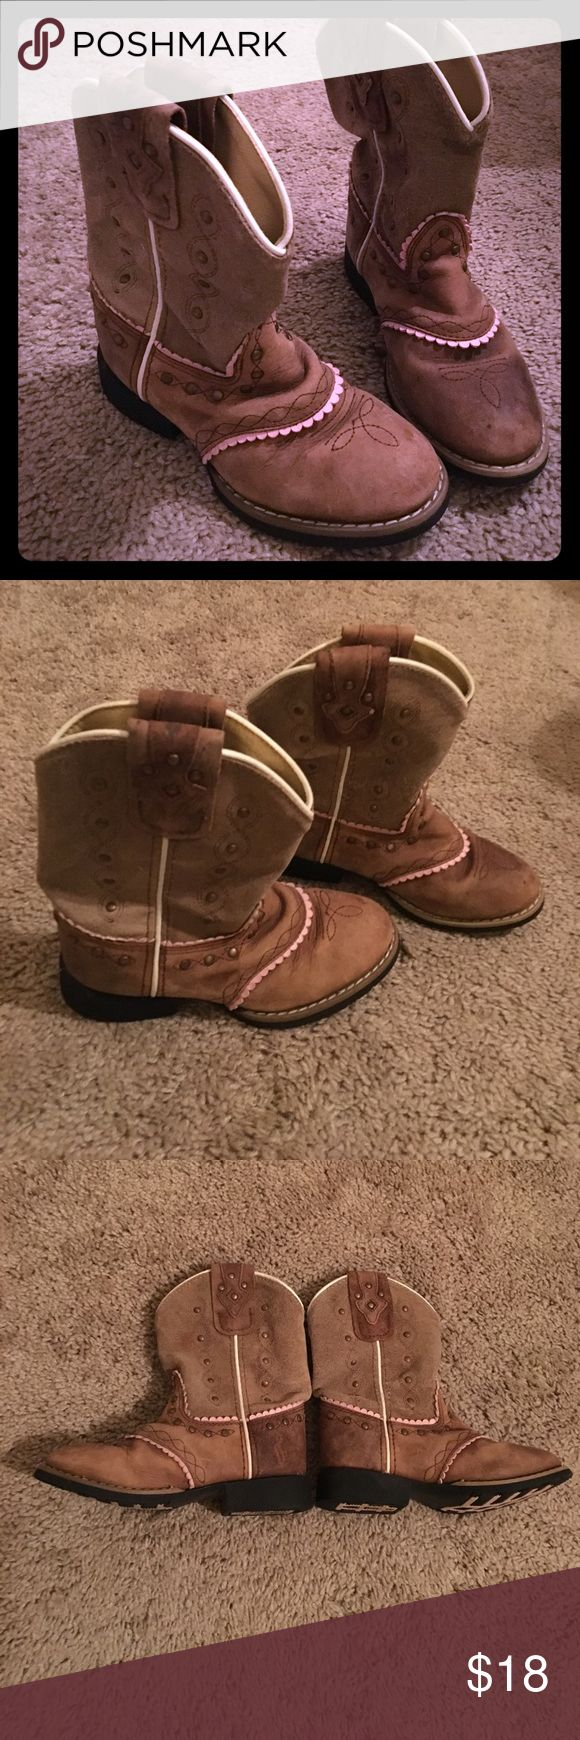 Girls Size 11 Smoky Mountain Boots Brown and Pink Very cute brown and pink boots Leather excellent condition 😍😍😍😍 Smoky Mountain Boots  Shoes Boots